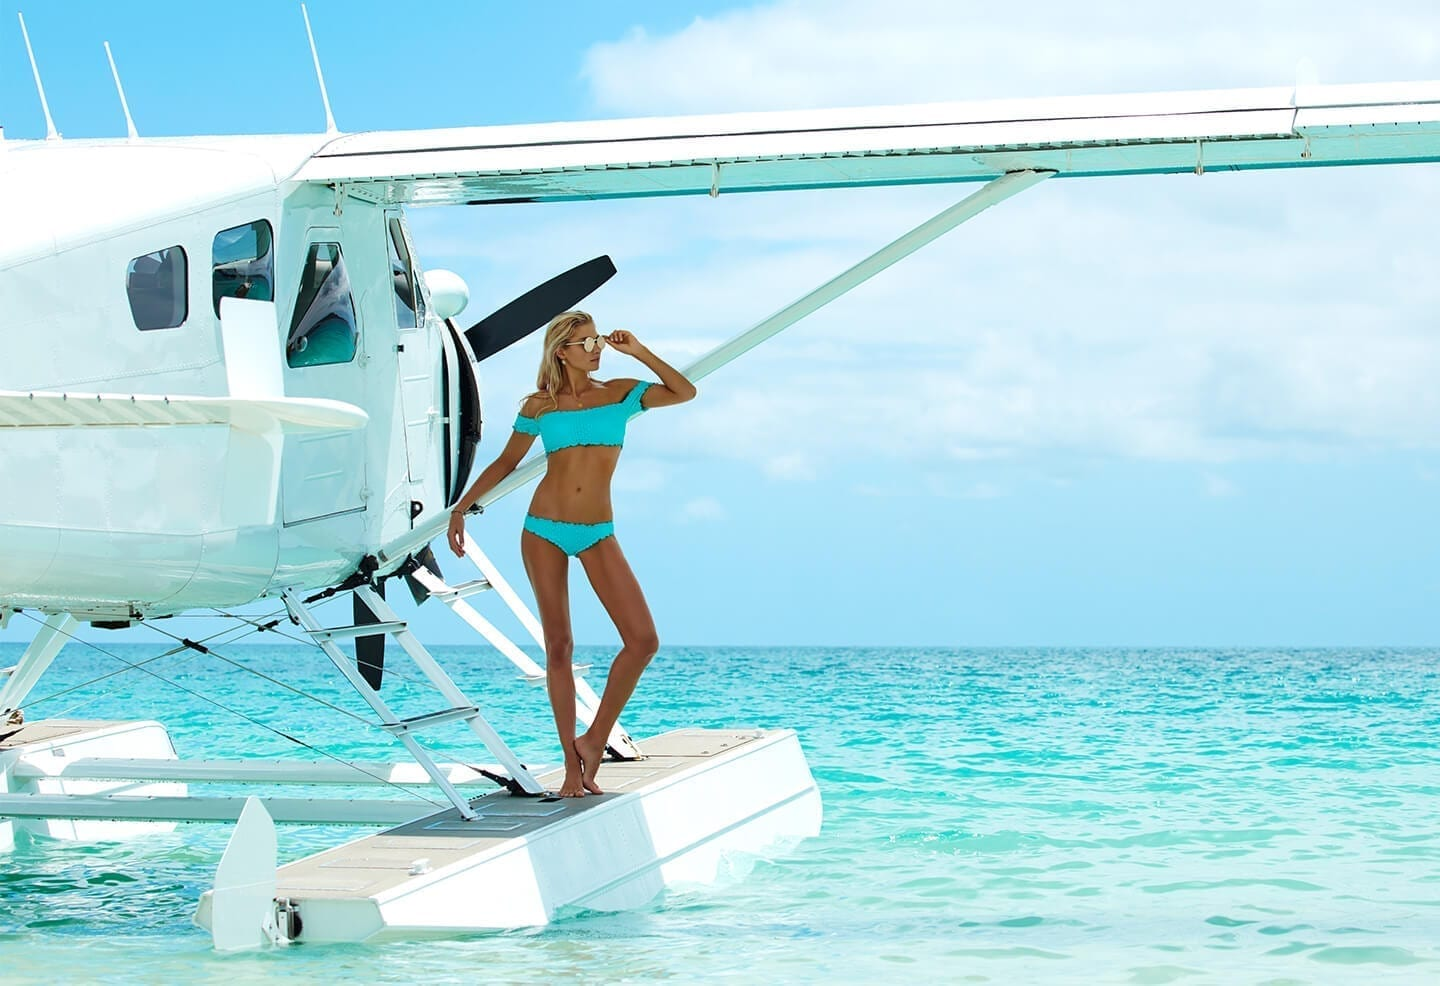 seafolly swimwear jetset best brands beachwear